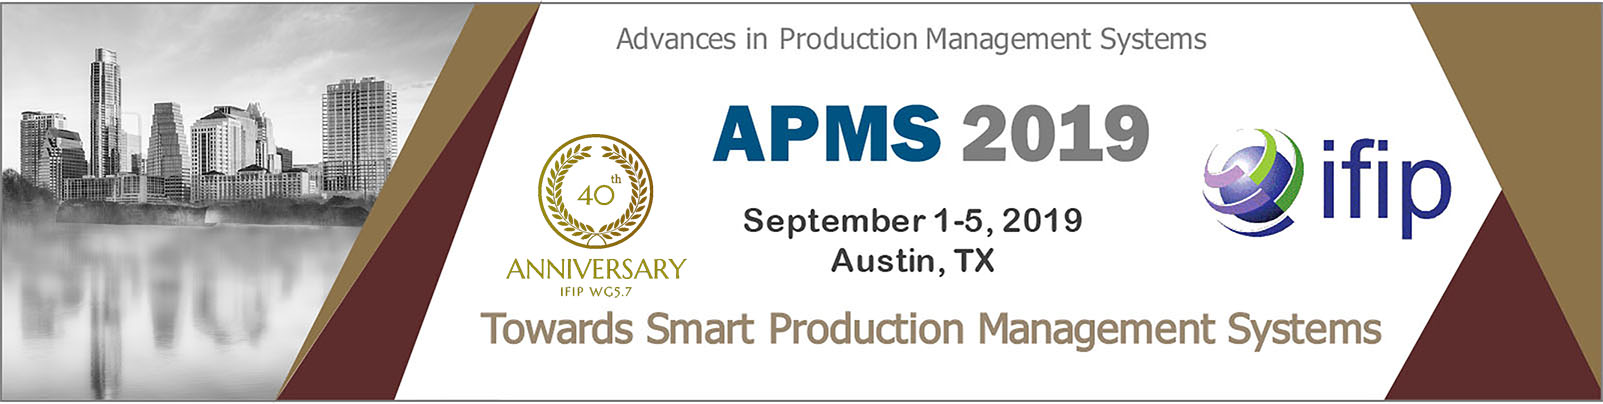 APMS Conference – IFIP